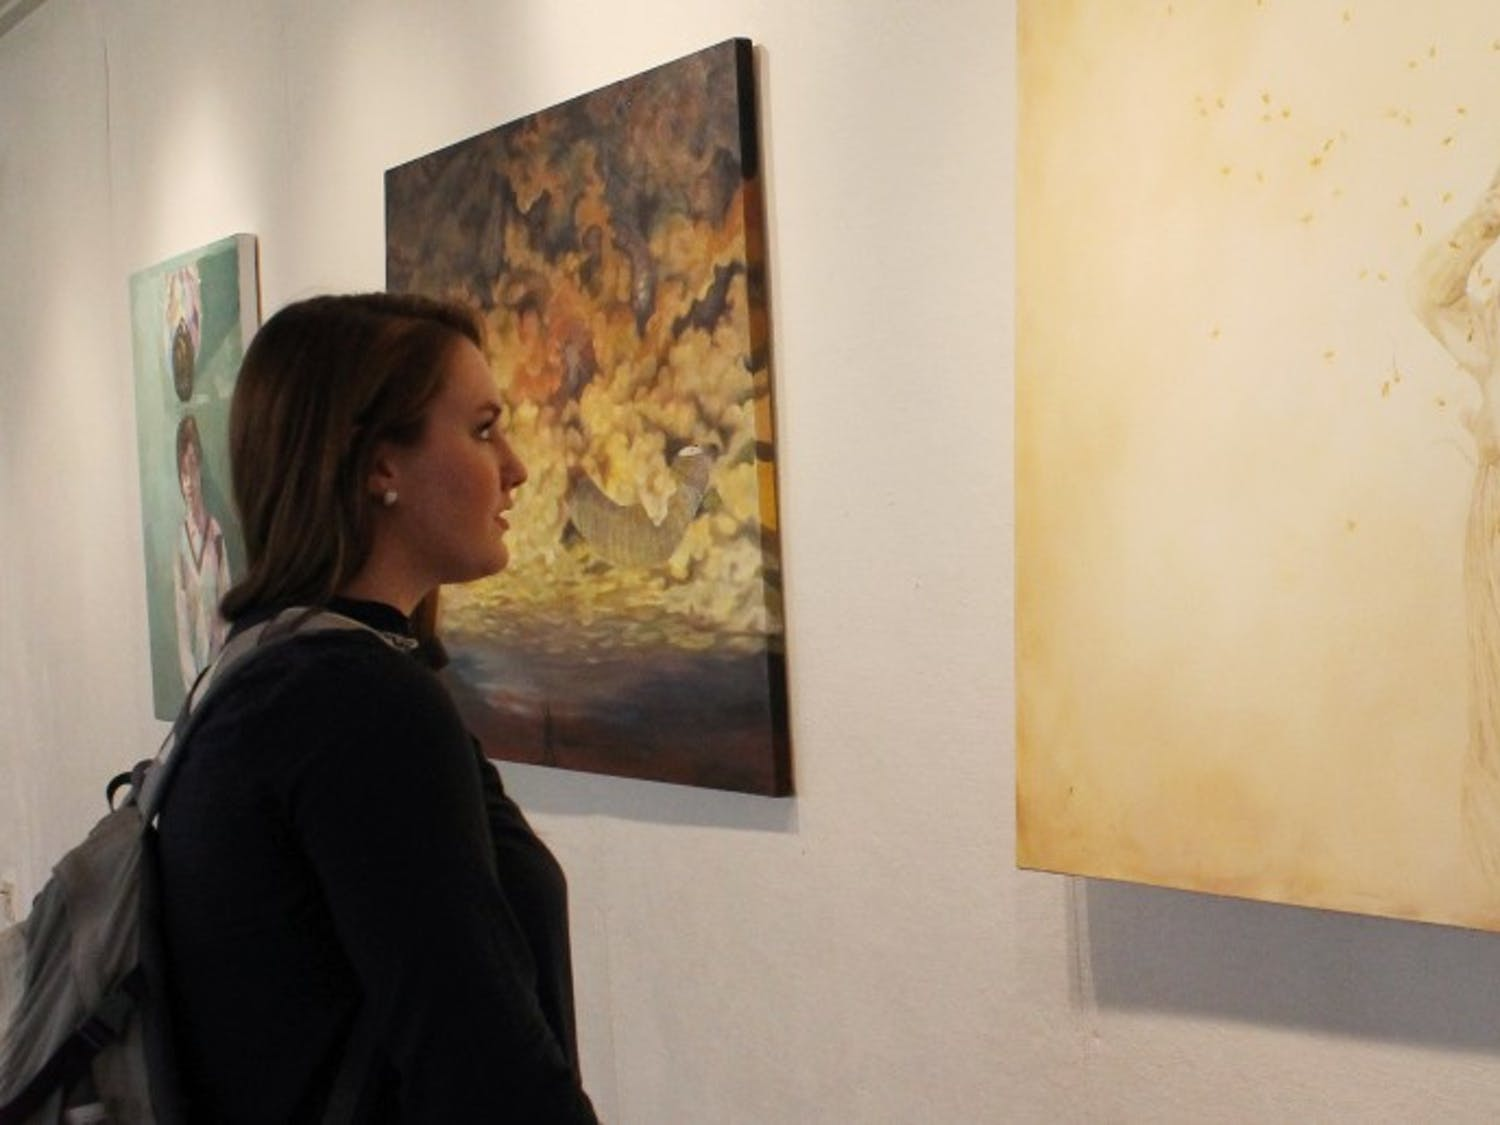 Reagan Toal, a freshman English major from Charlotte, North Carolina, enjoys looking at the artwork on display.